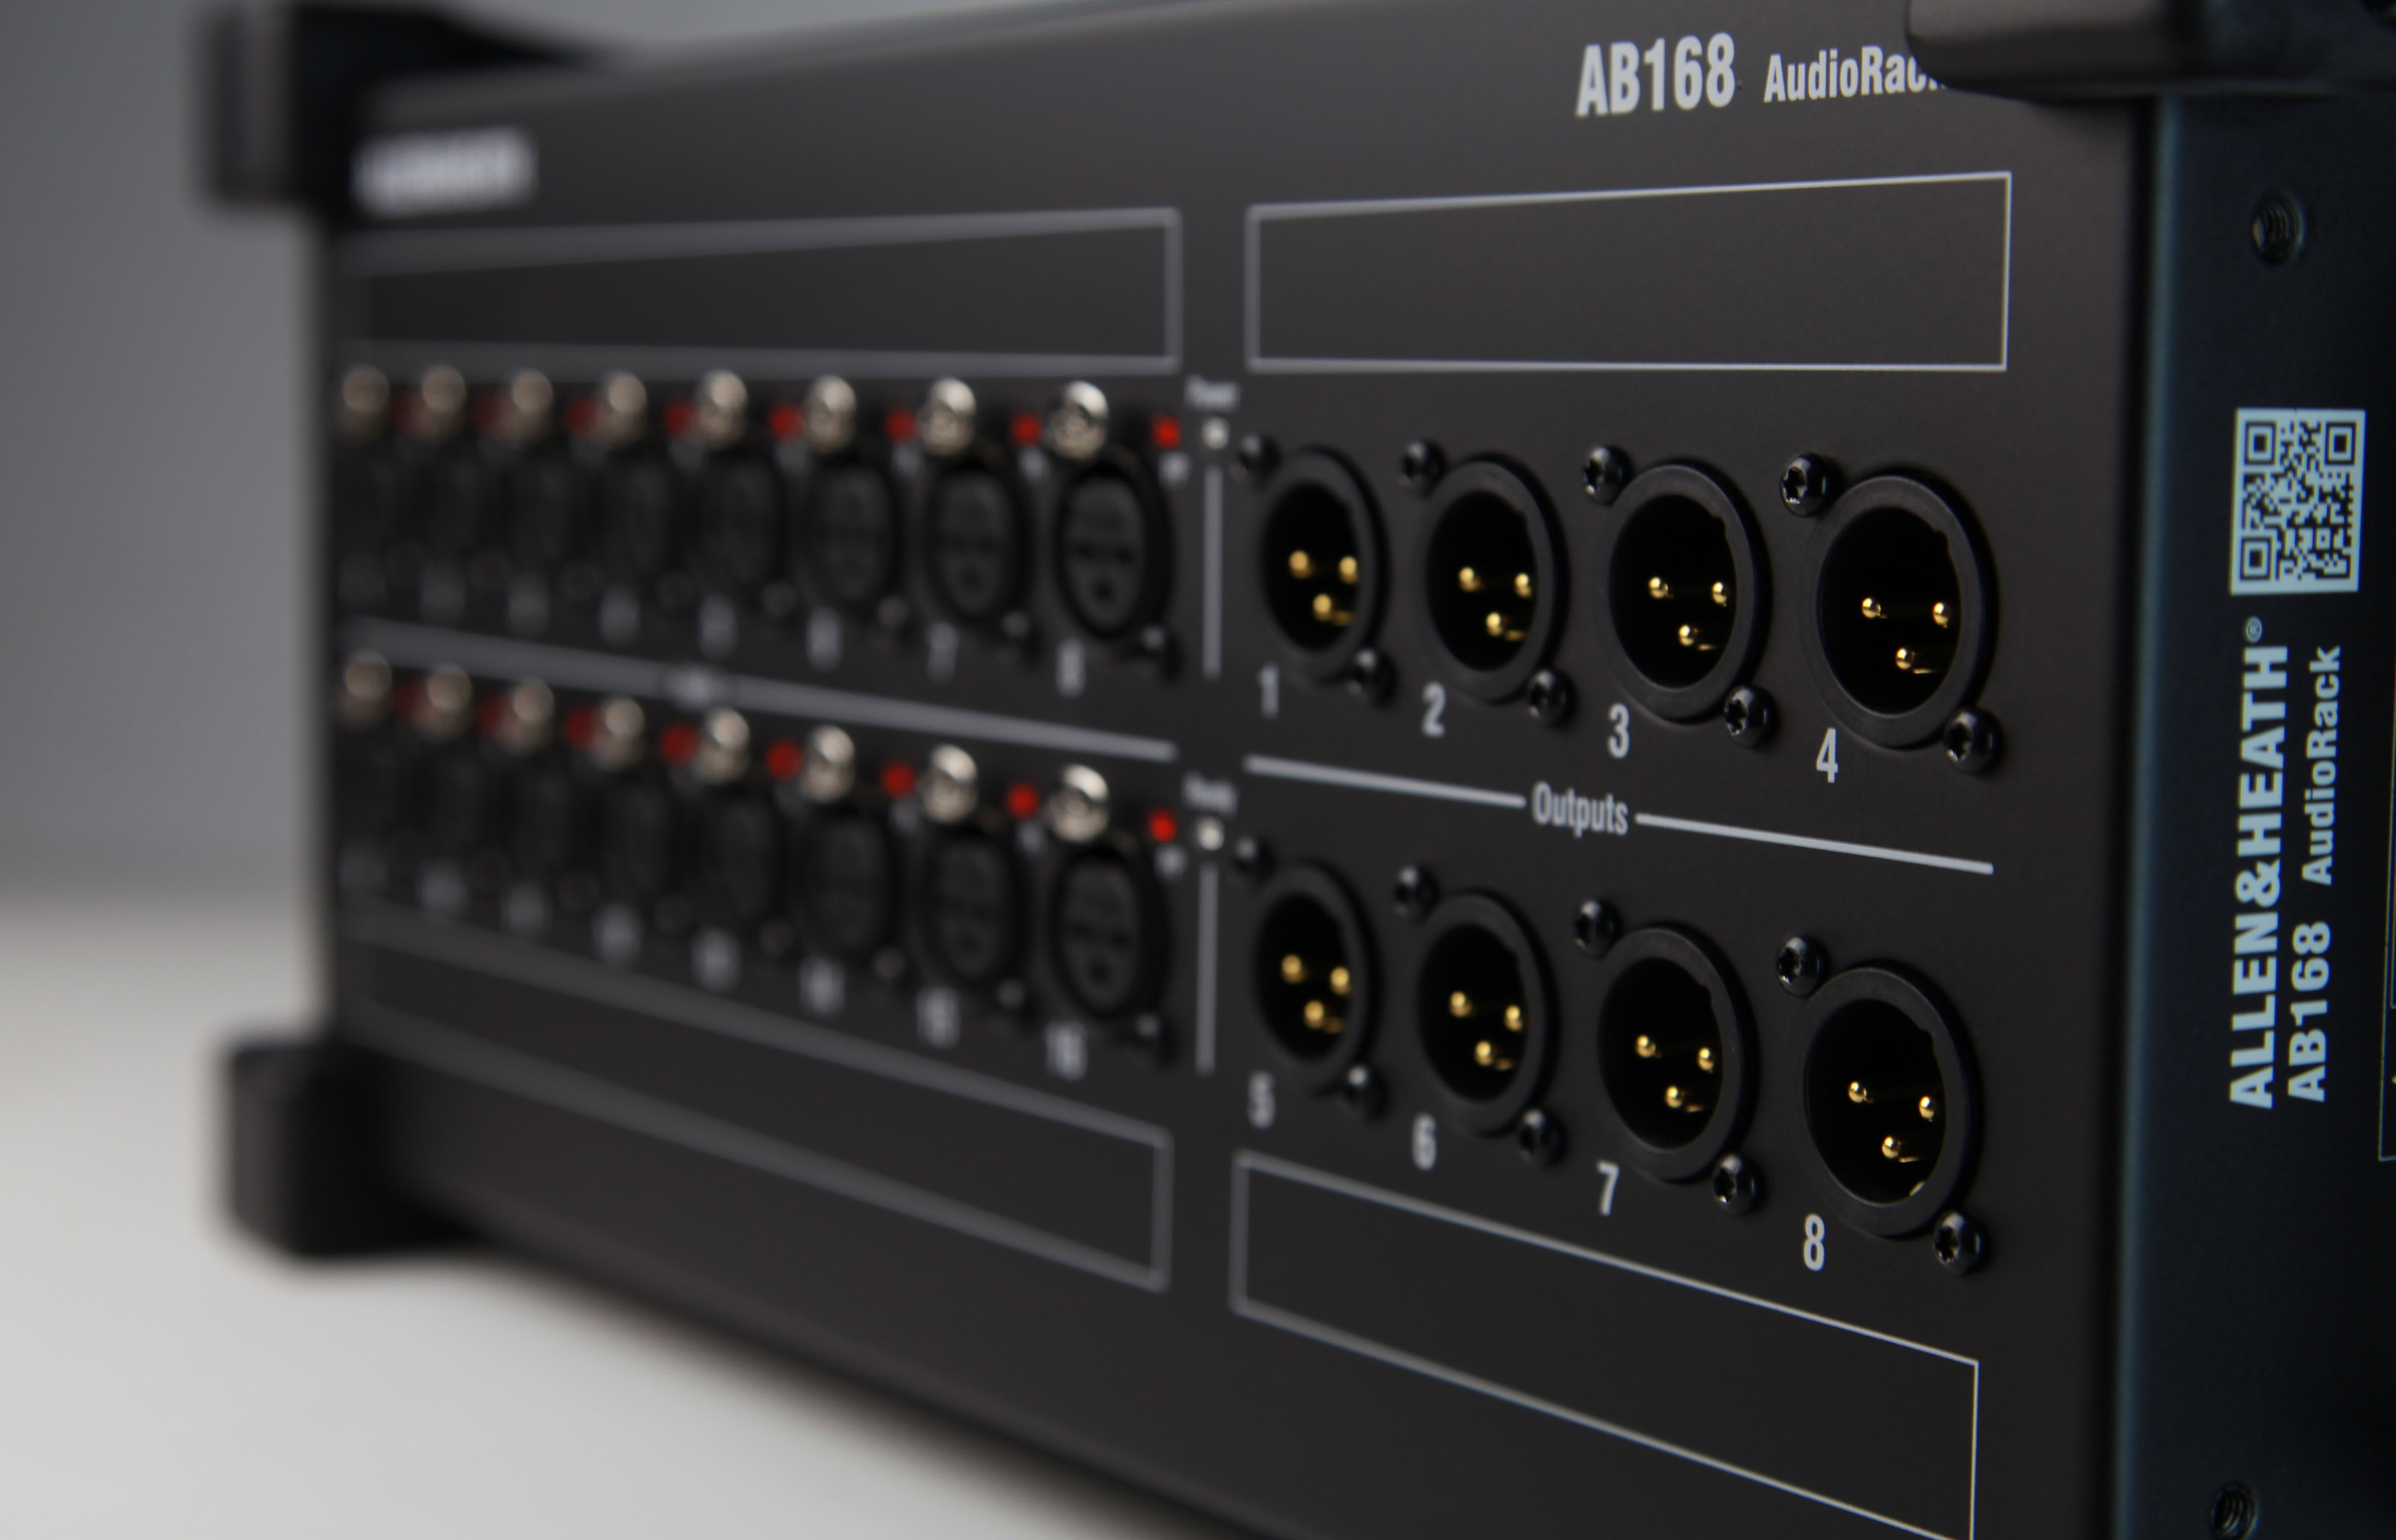 Allen & Heath AB168 (portable audio rack)